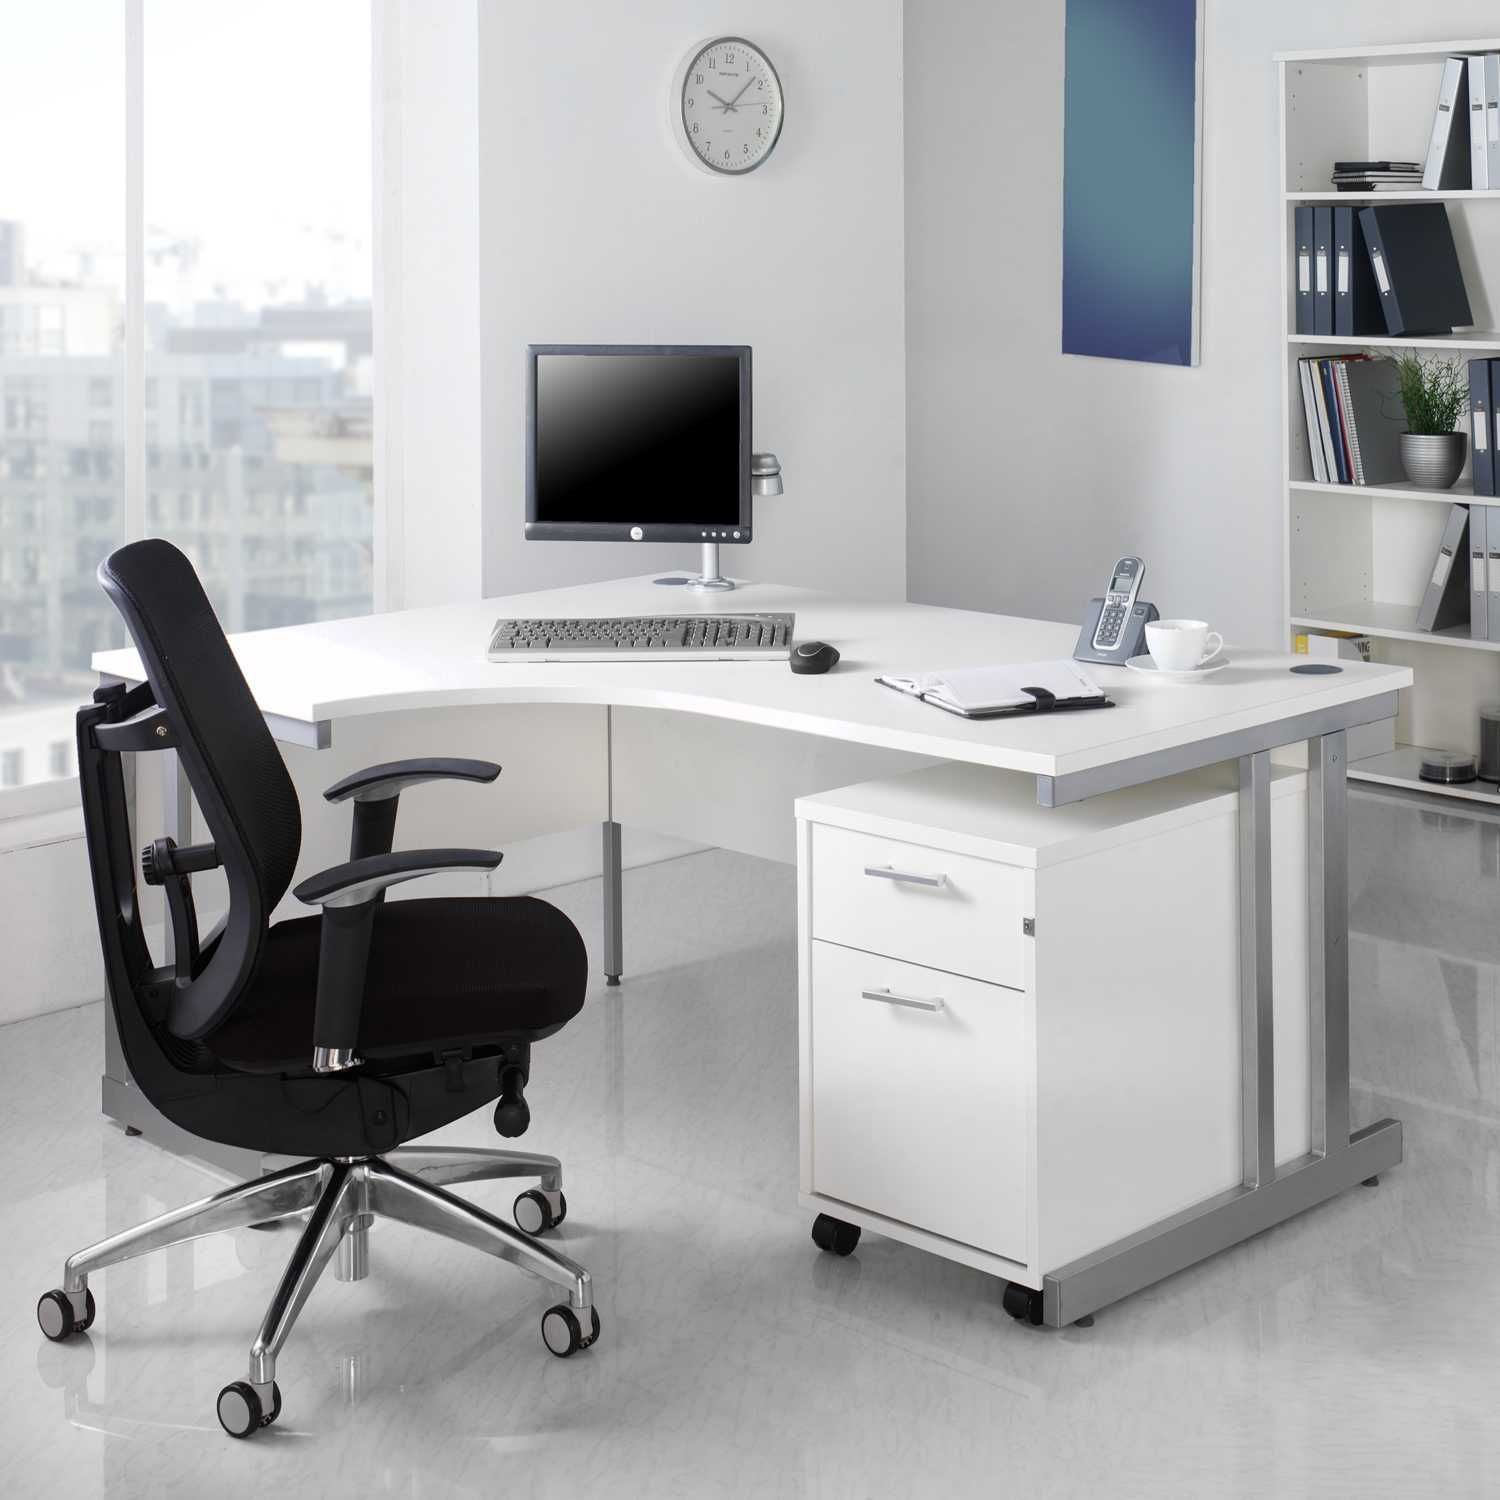 Amazing Corner Office Desks Garage Roofing Tree Services Cabinets Library